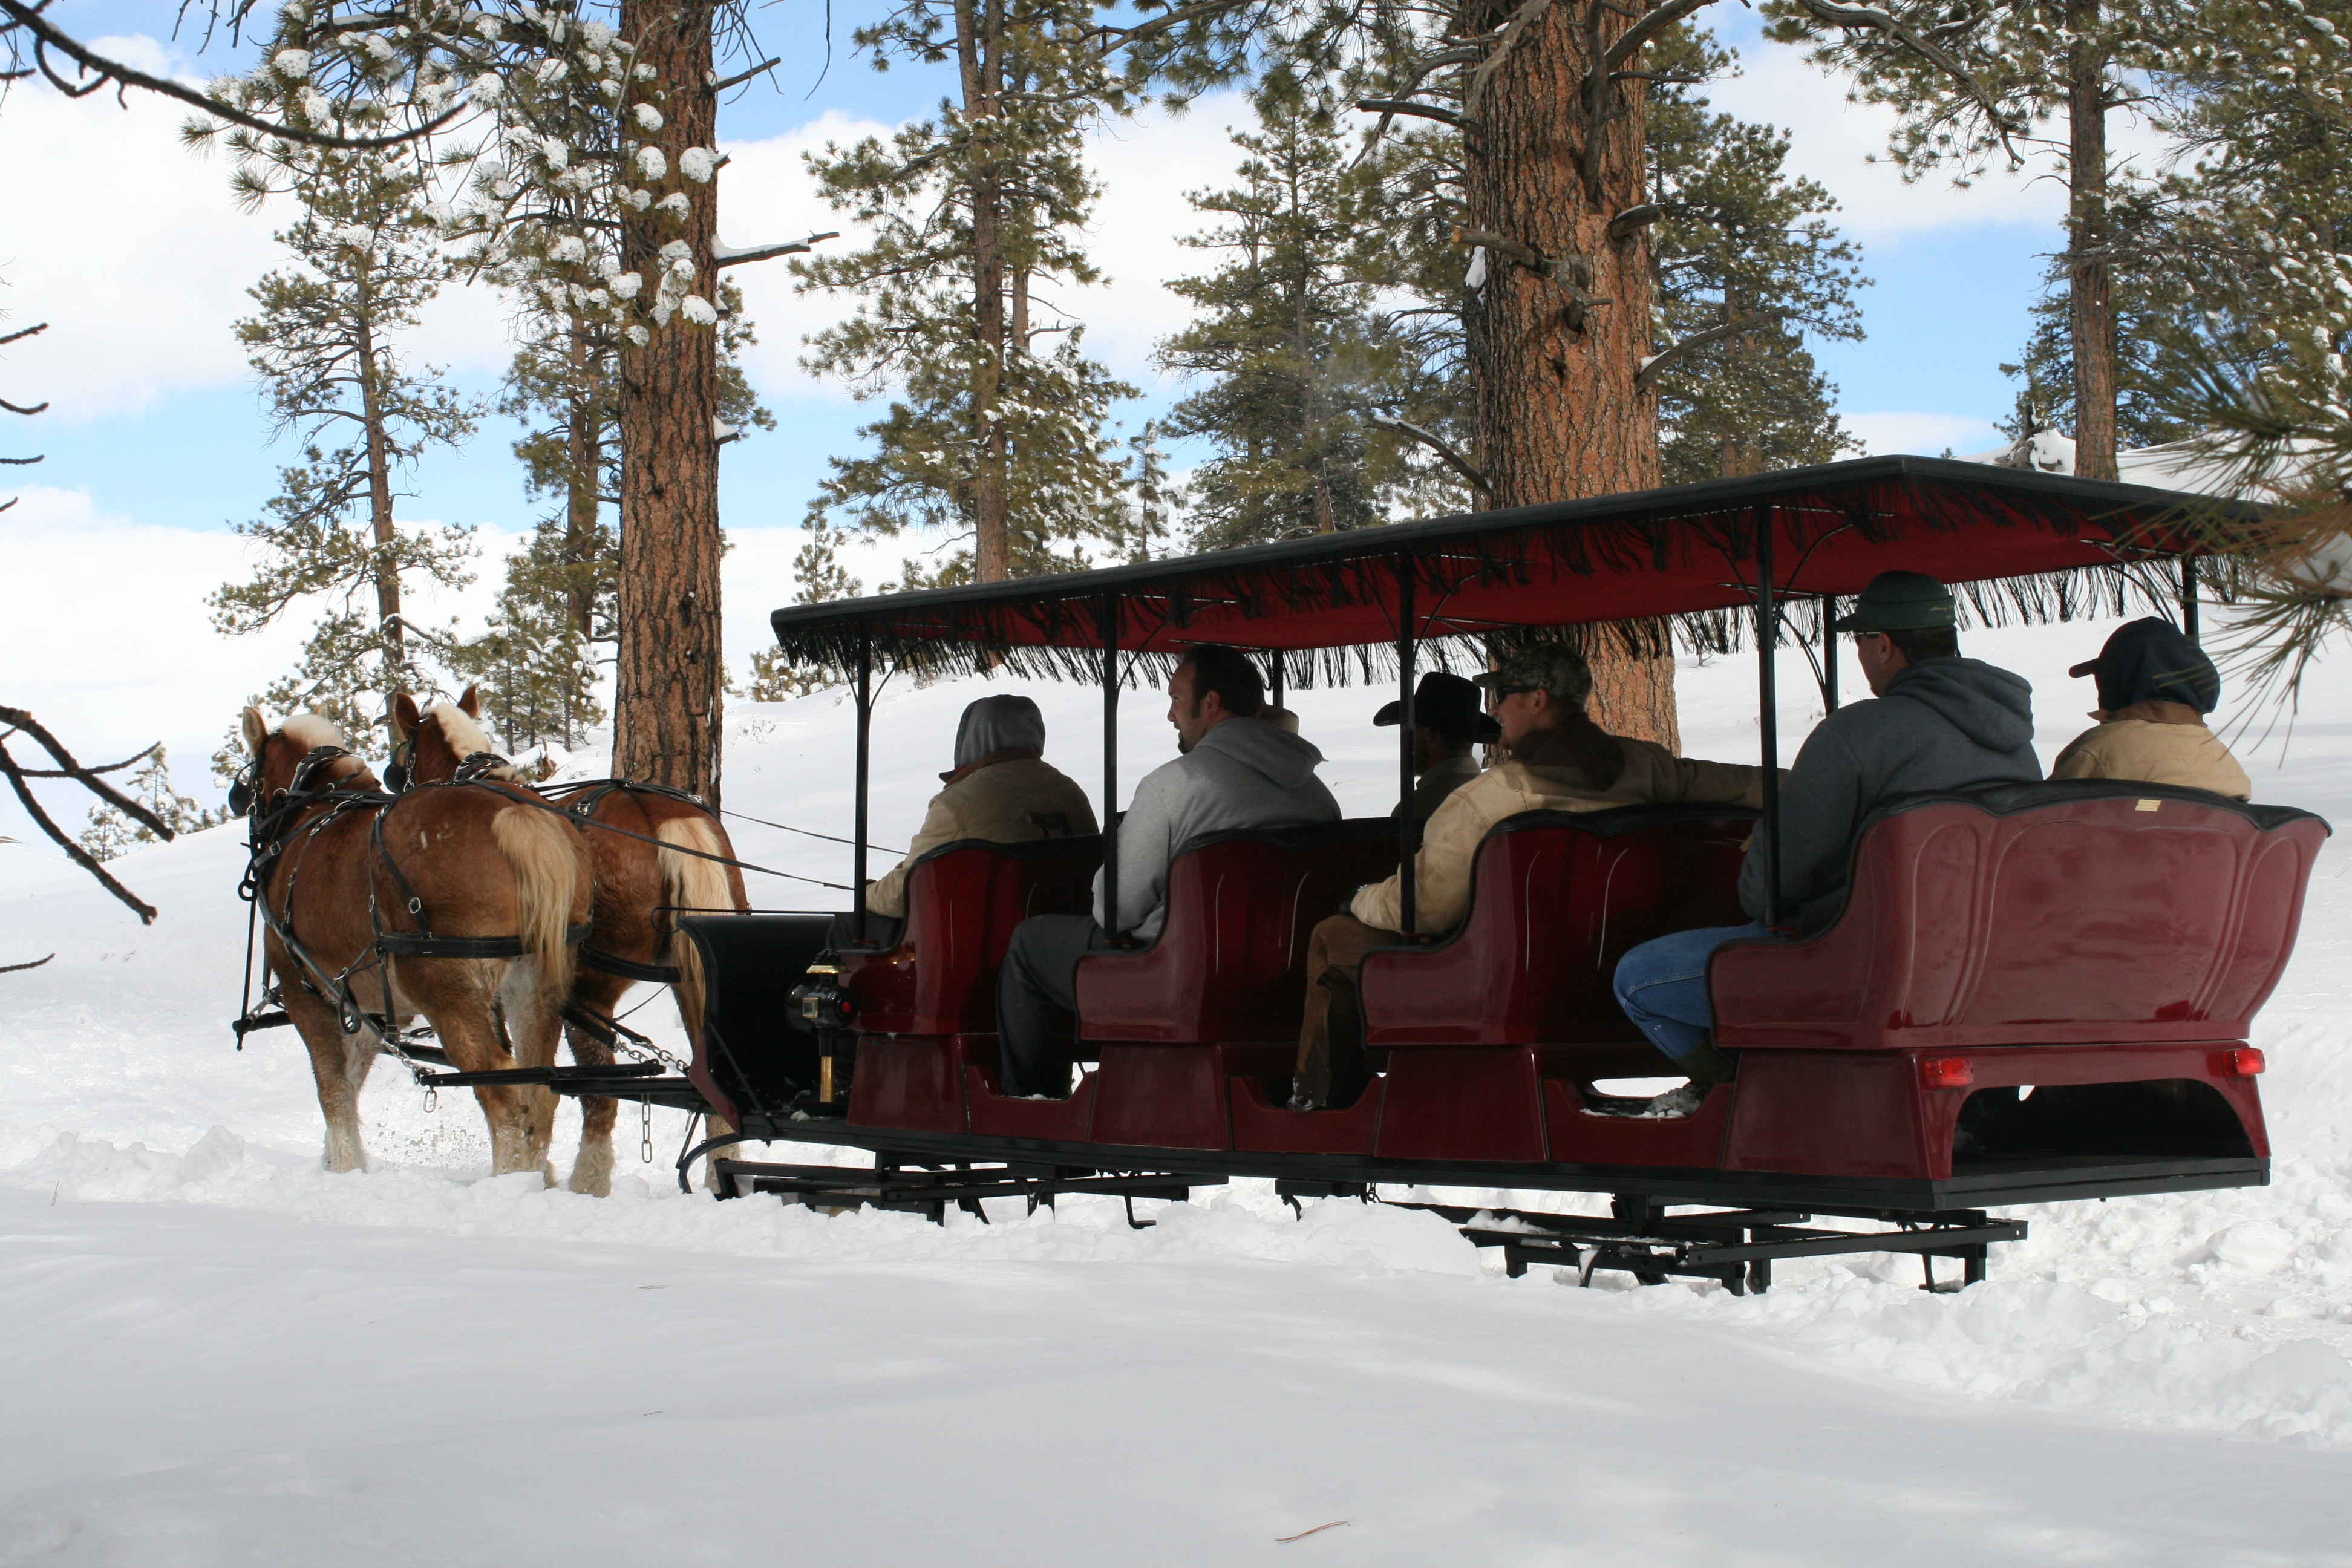 Historic Ruby's Inn hosts Bryce Canyon Winter Festival, Bryce Canyon, Utah, February 2014 | Photo courtesy of Ruby's Inn/Bryce Canyon Country Tourism Office, St. George News